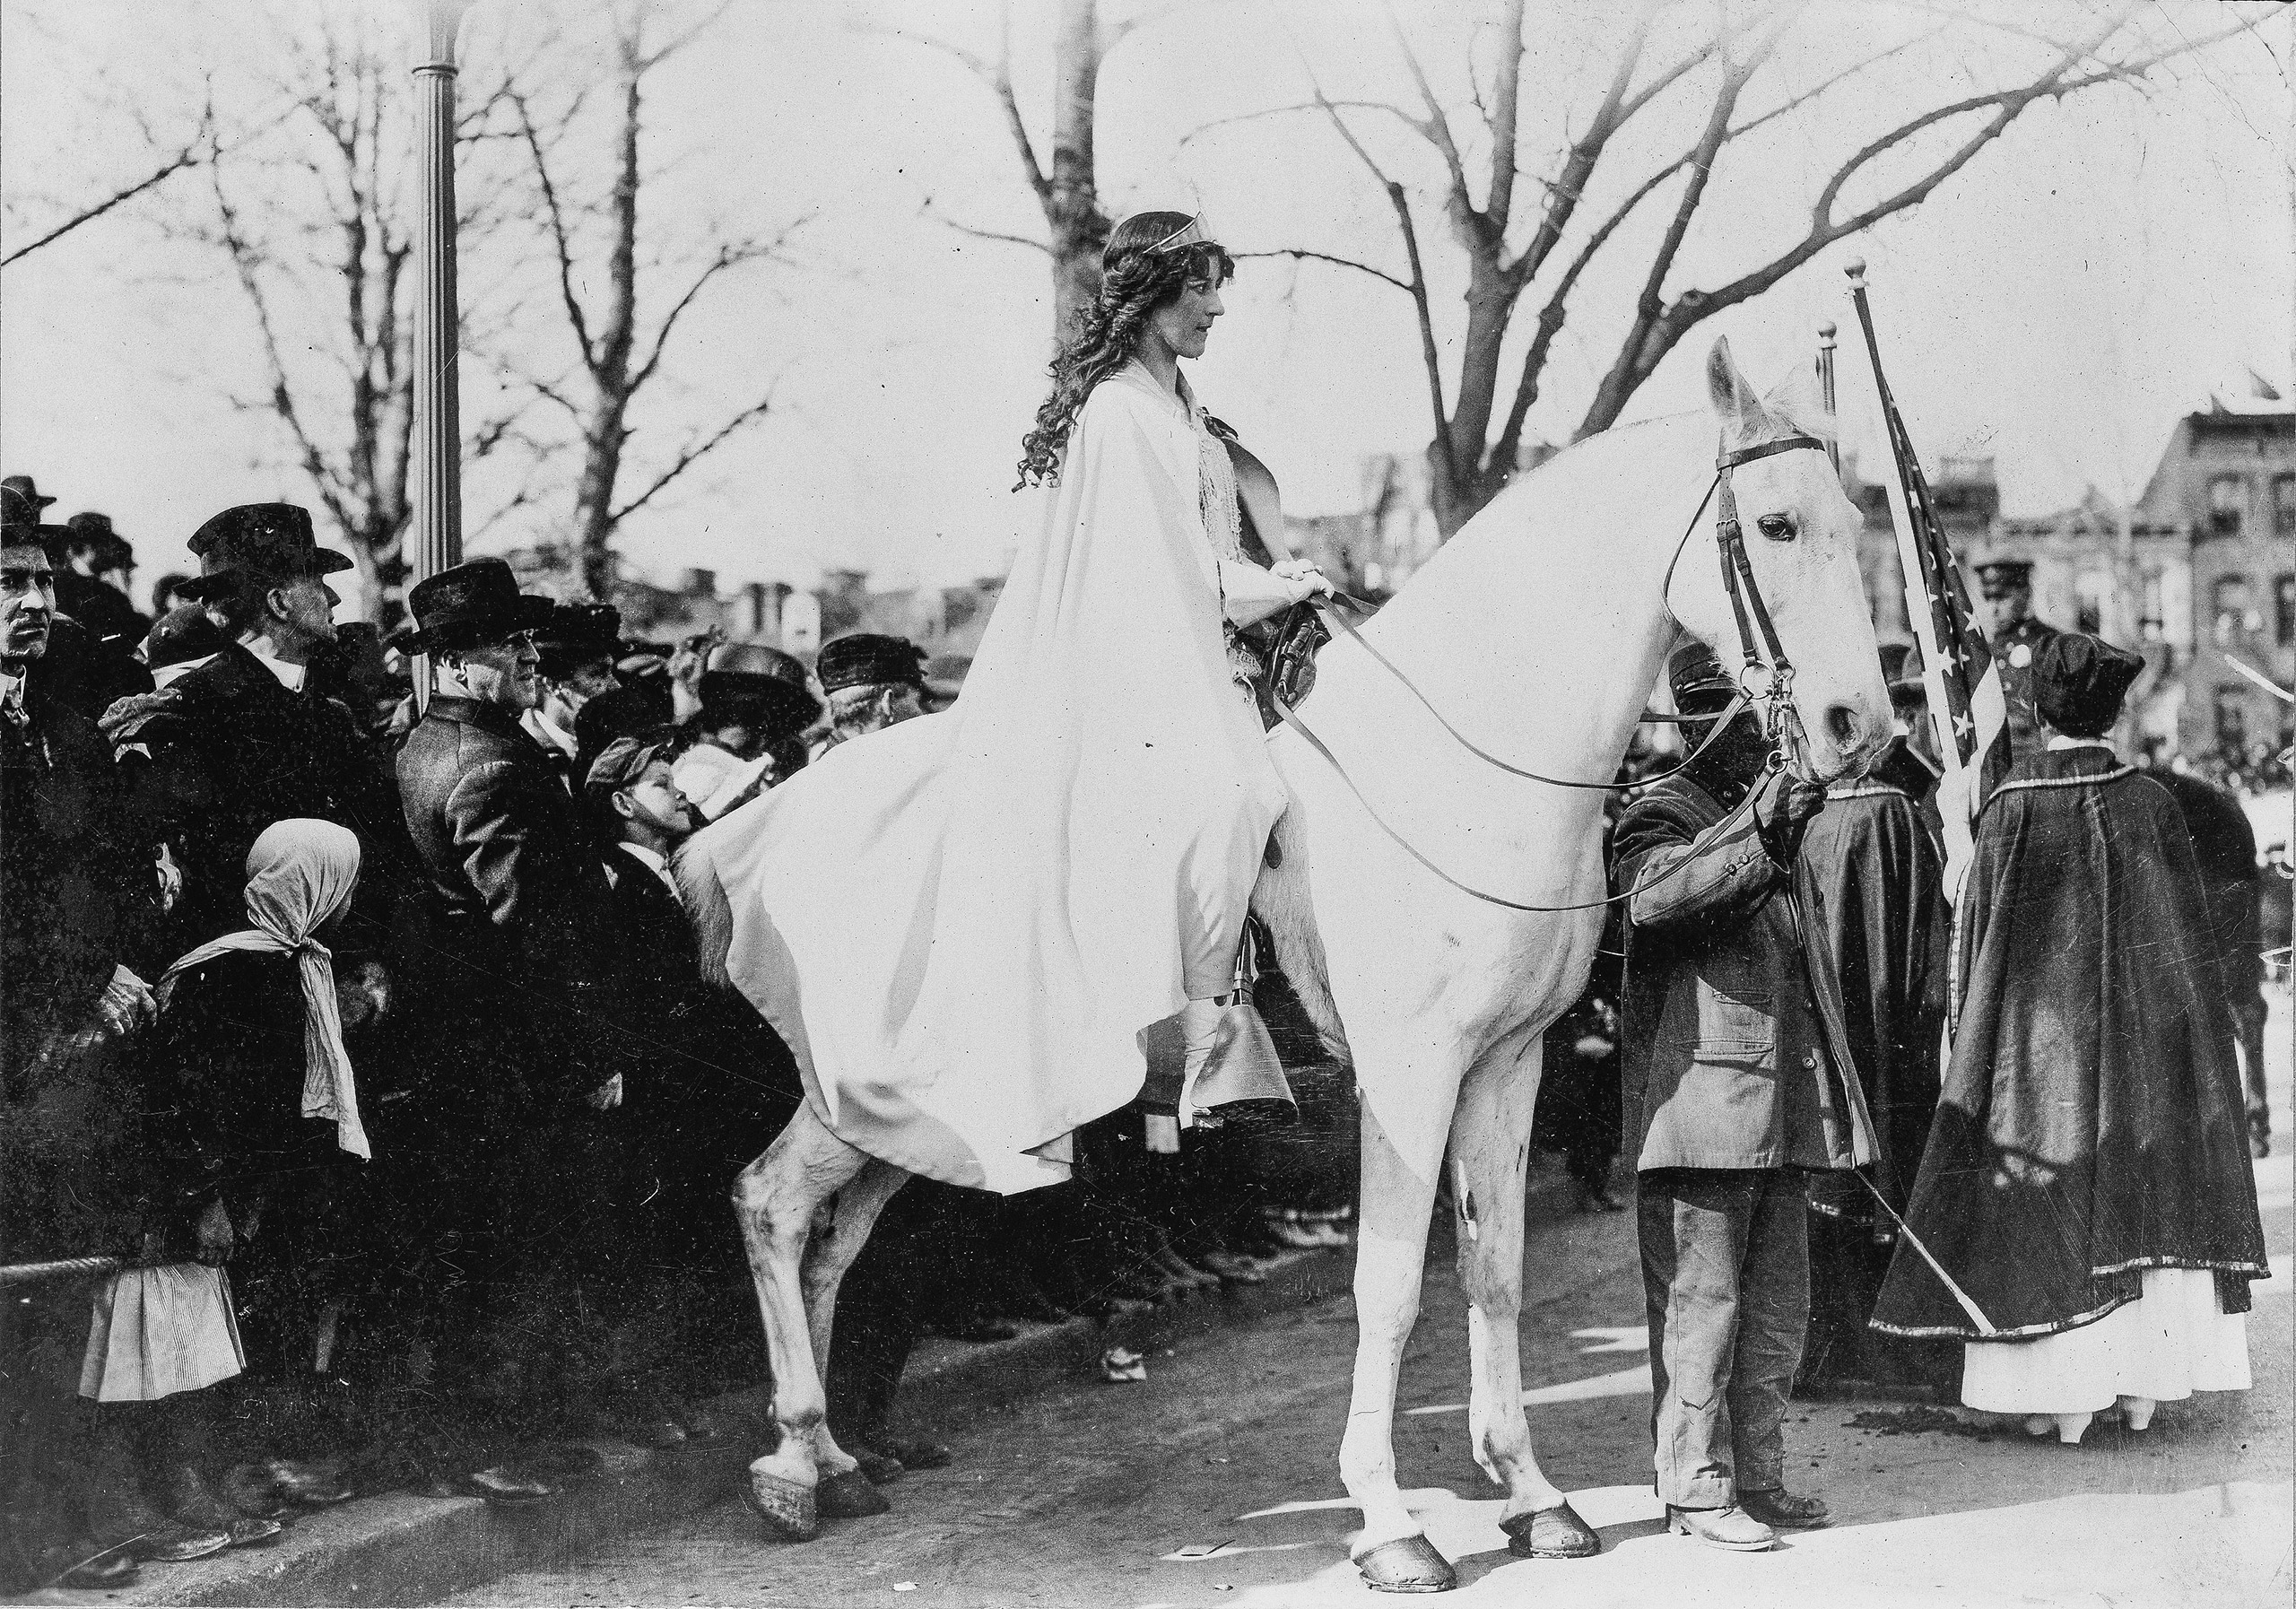 Inez Milholland Boissevain, wearing a white cape, seated on a white horse at the National American Woman Suffrage Association parade.